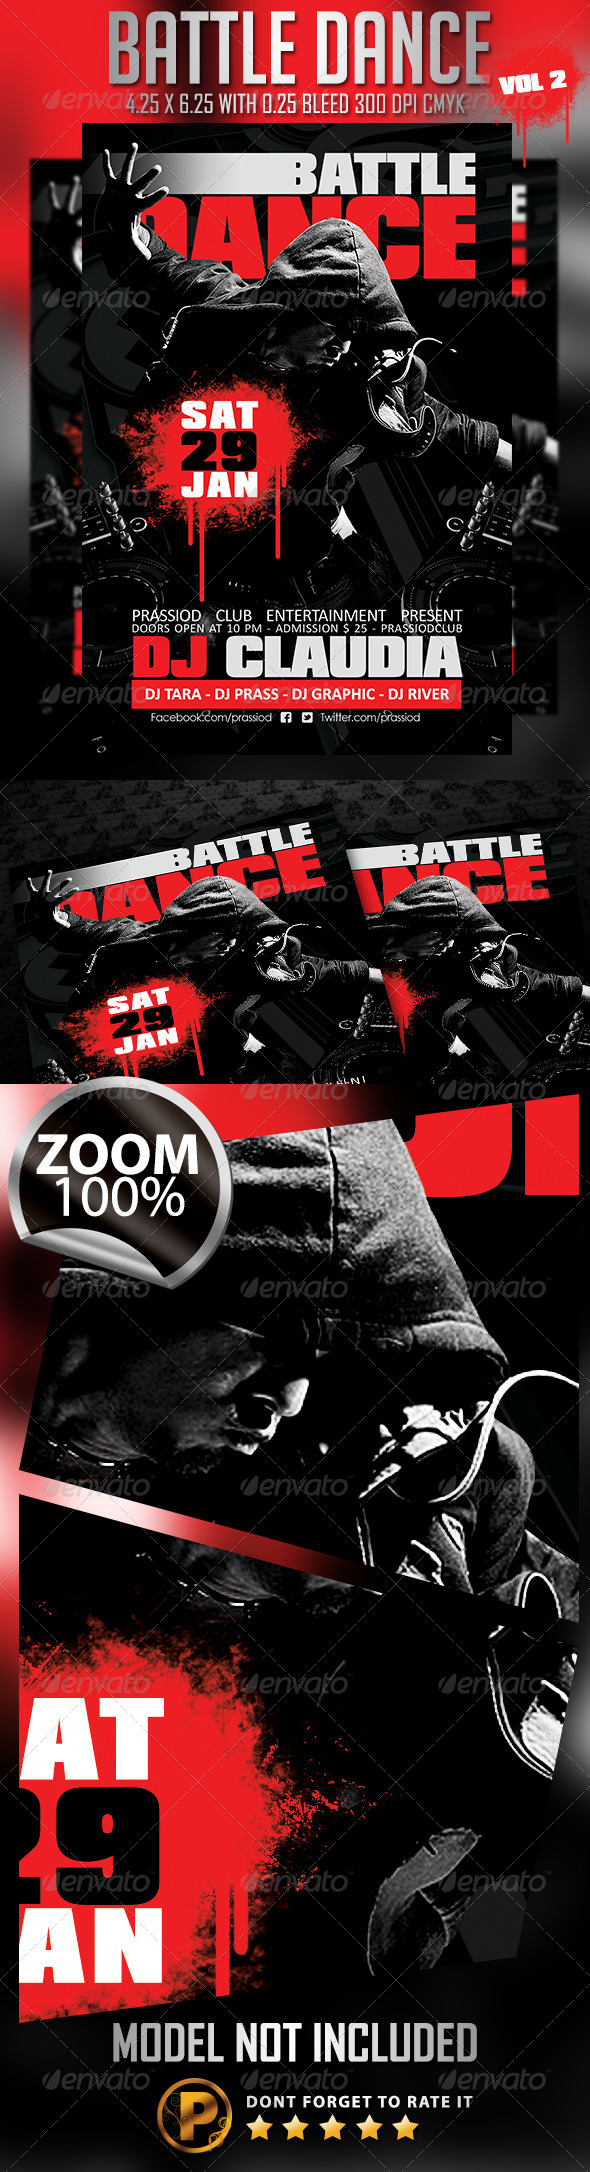 Battle Dance Flyer Template Vol 2 - Clubs & Parties Events